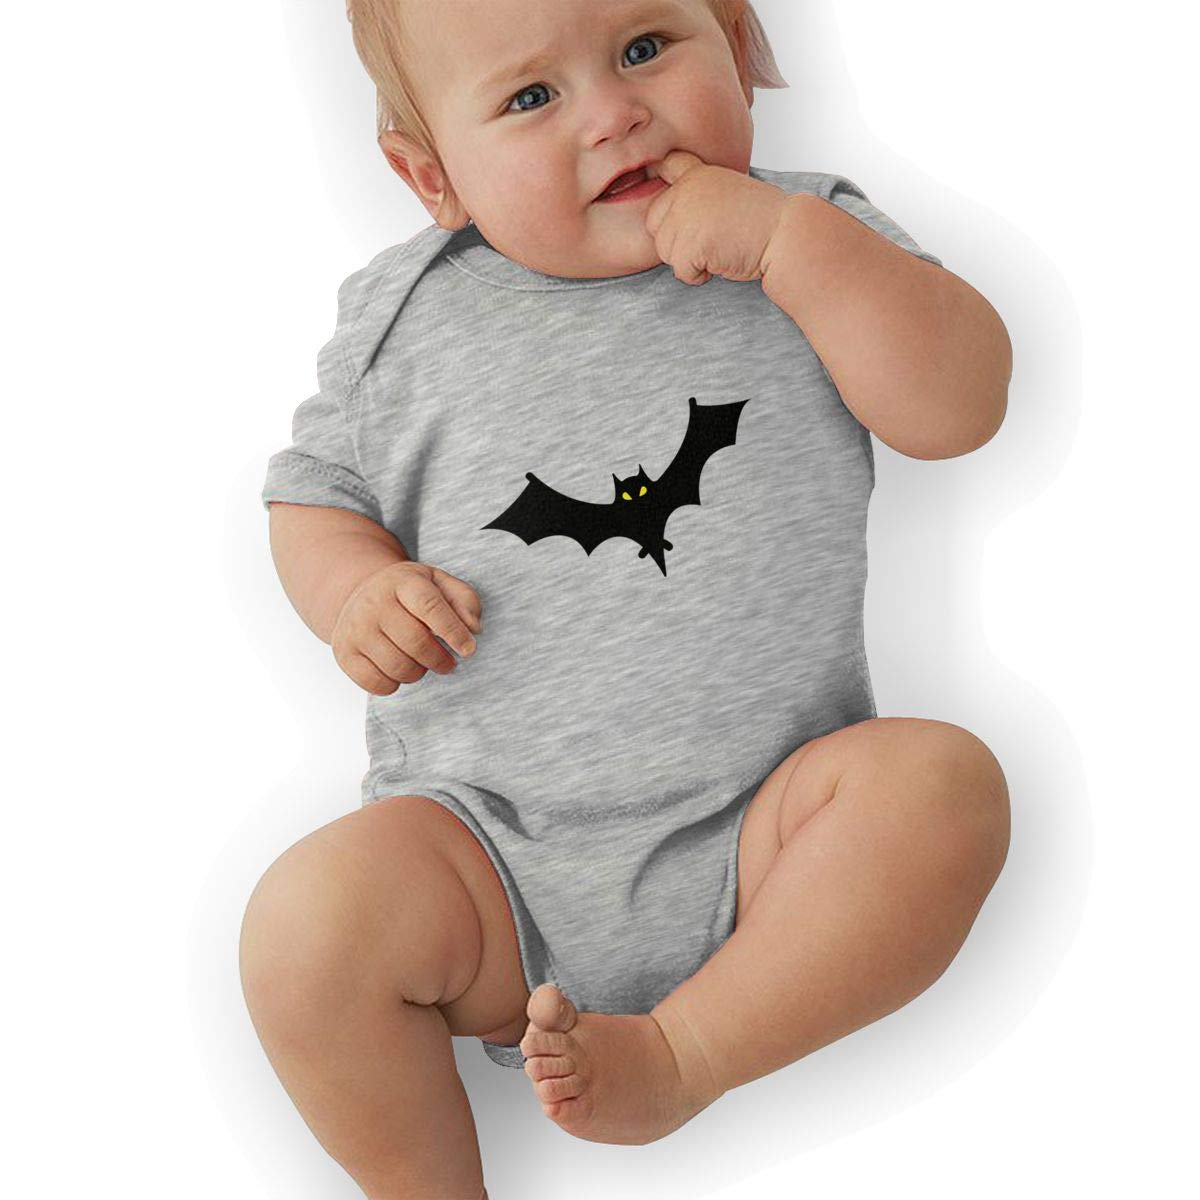 Dfenere Bat Retro Newborn Baby Short Sleeve Bodysuit Romper Infant Summer Clothing